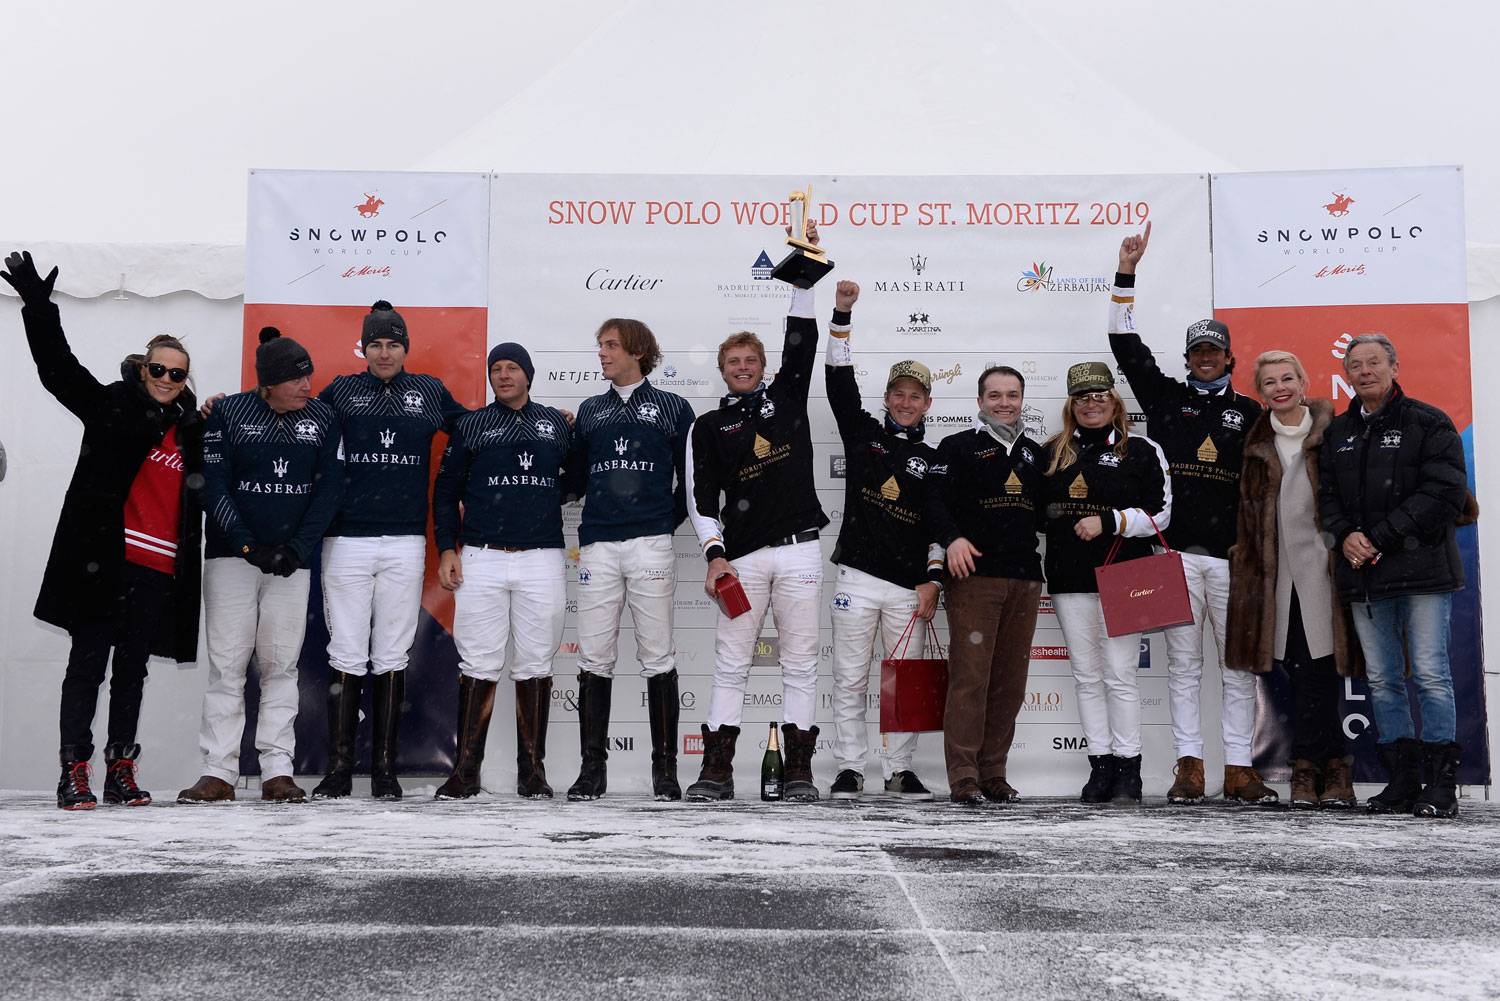 The 35th Snow Polo World Cup St. Moritz Was A Tournament Of Firsts 4